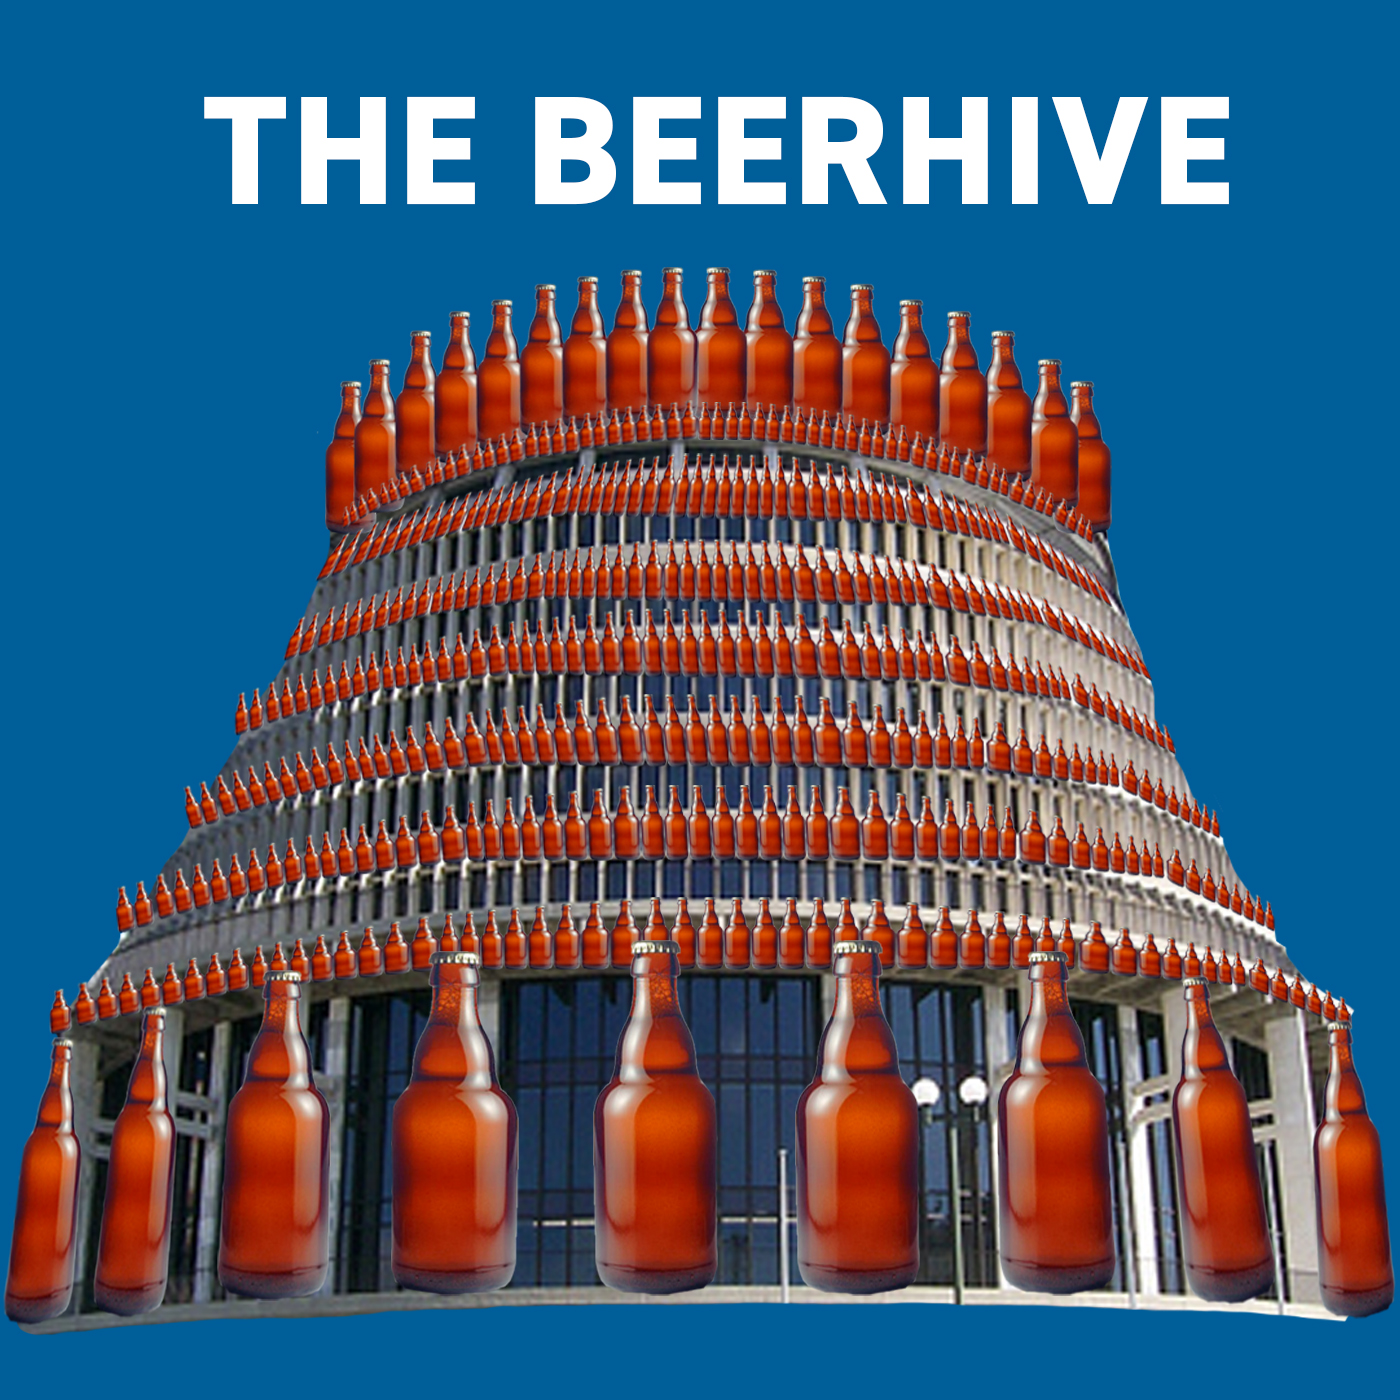 The Beerhive